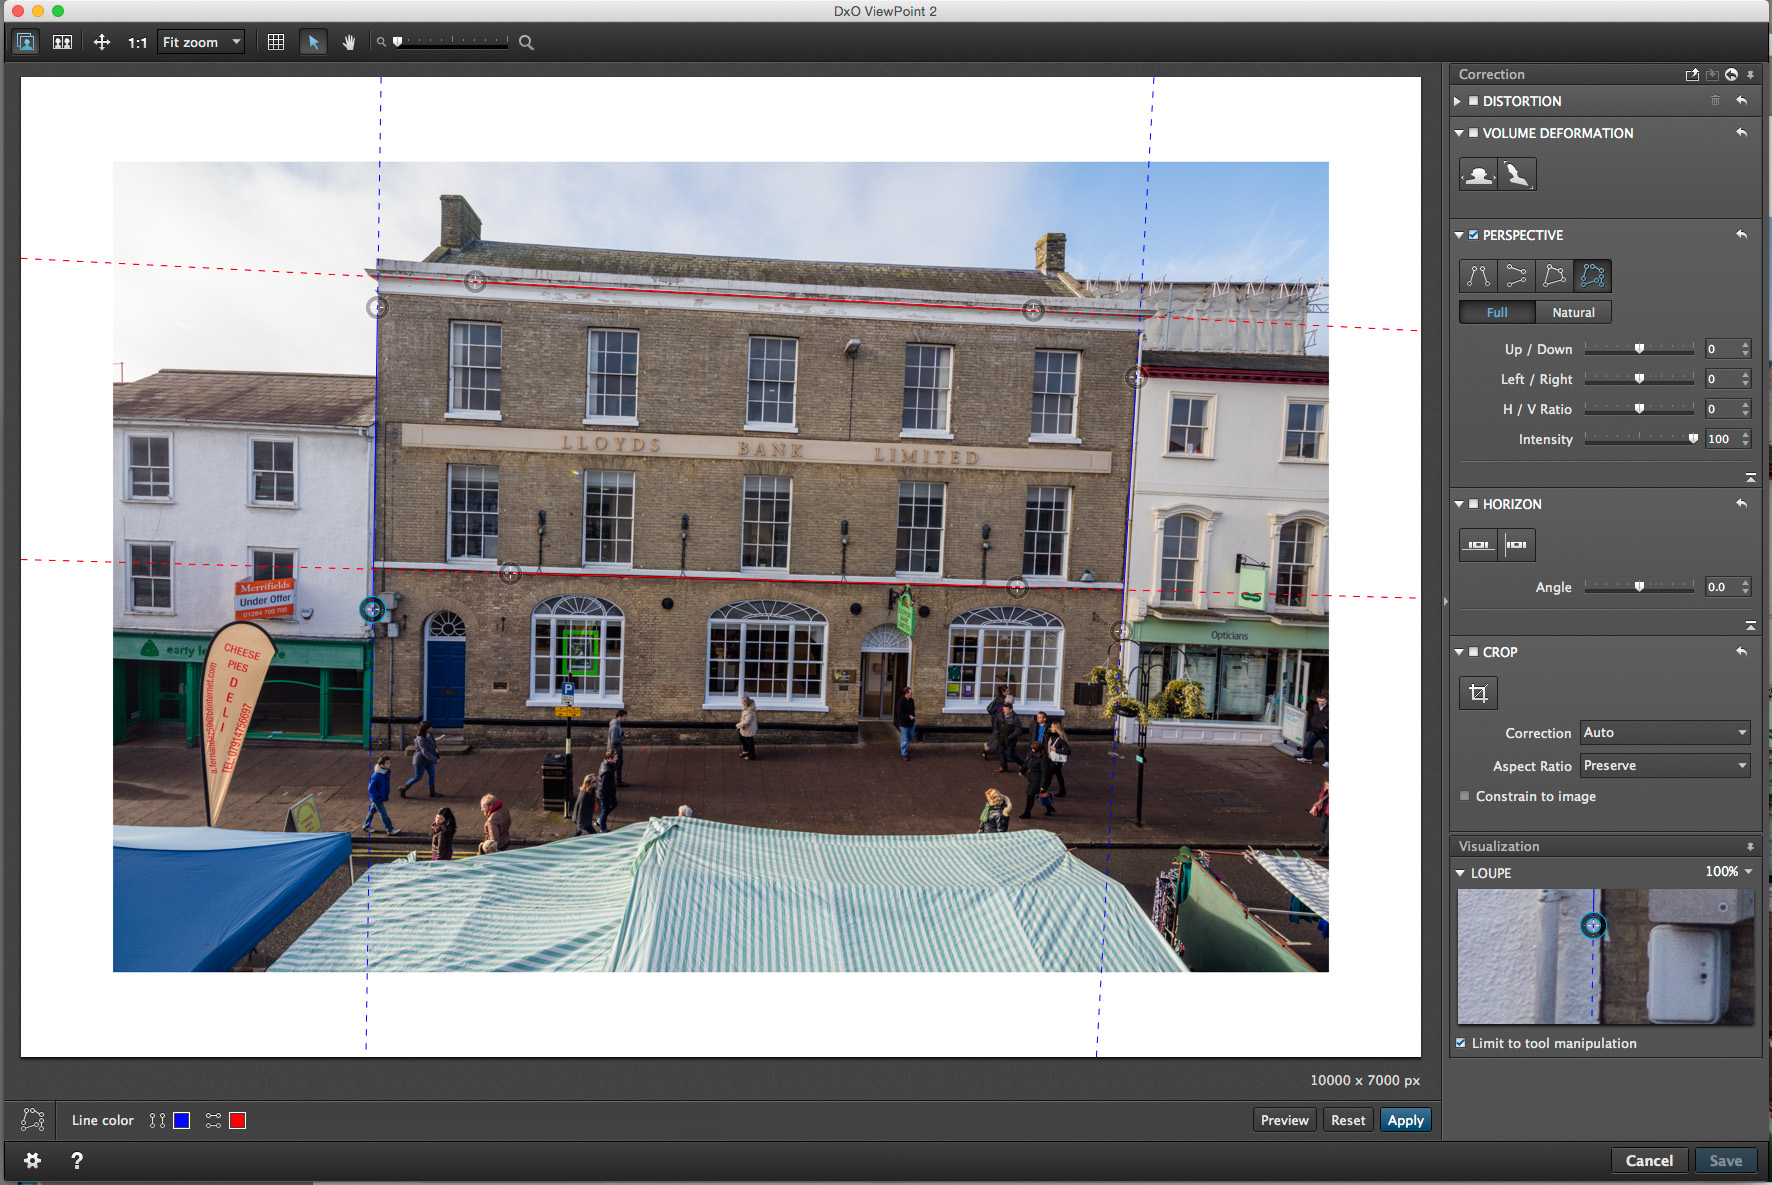 correcting image from elevated tripod